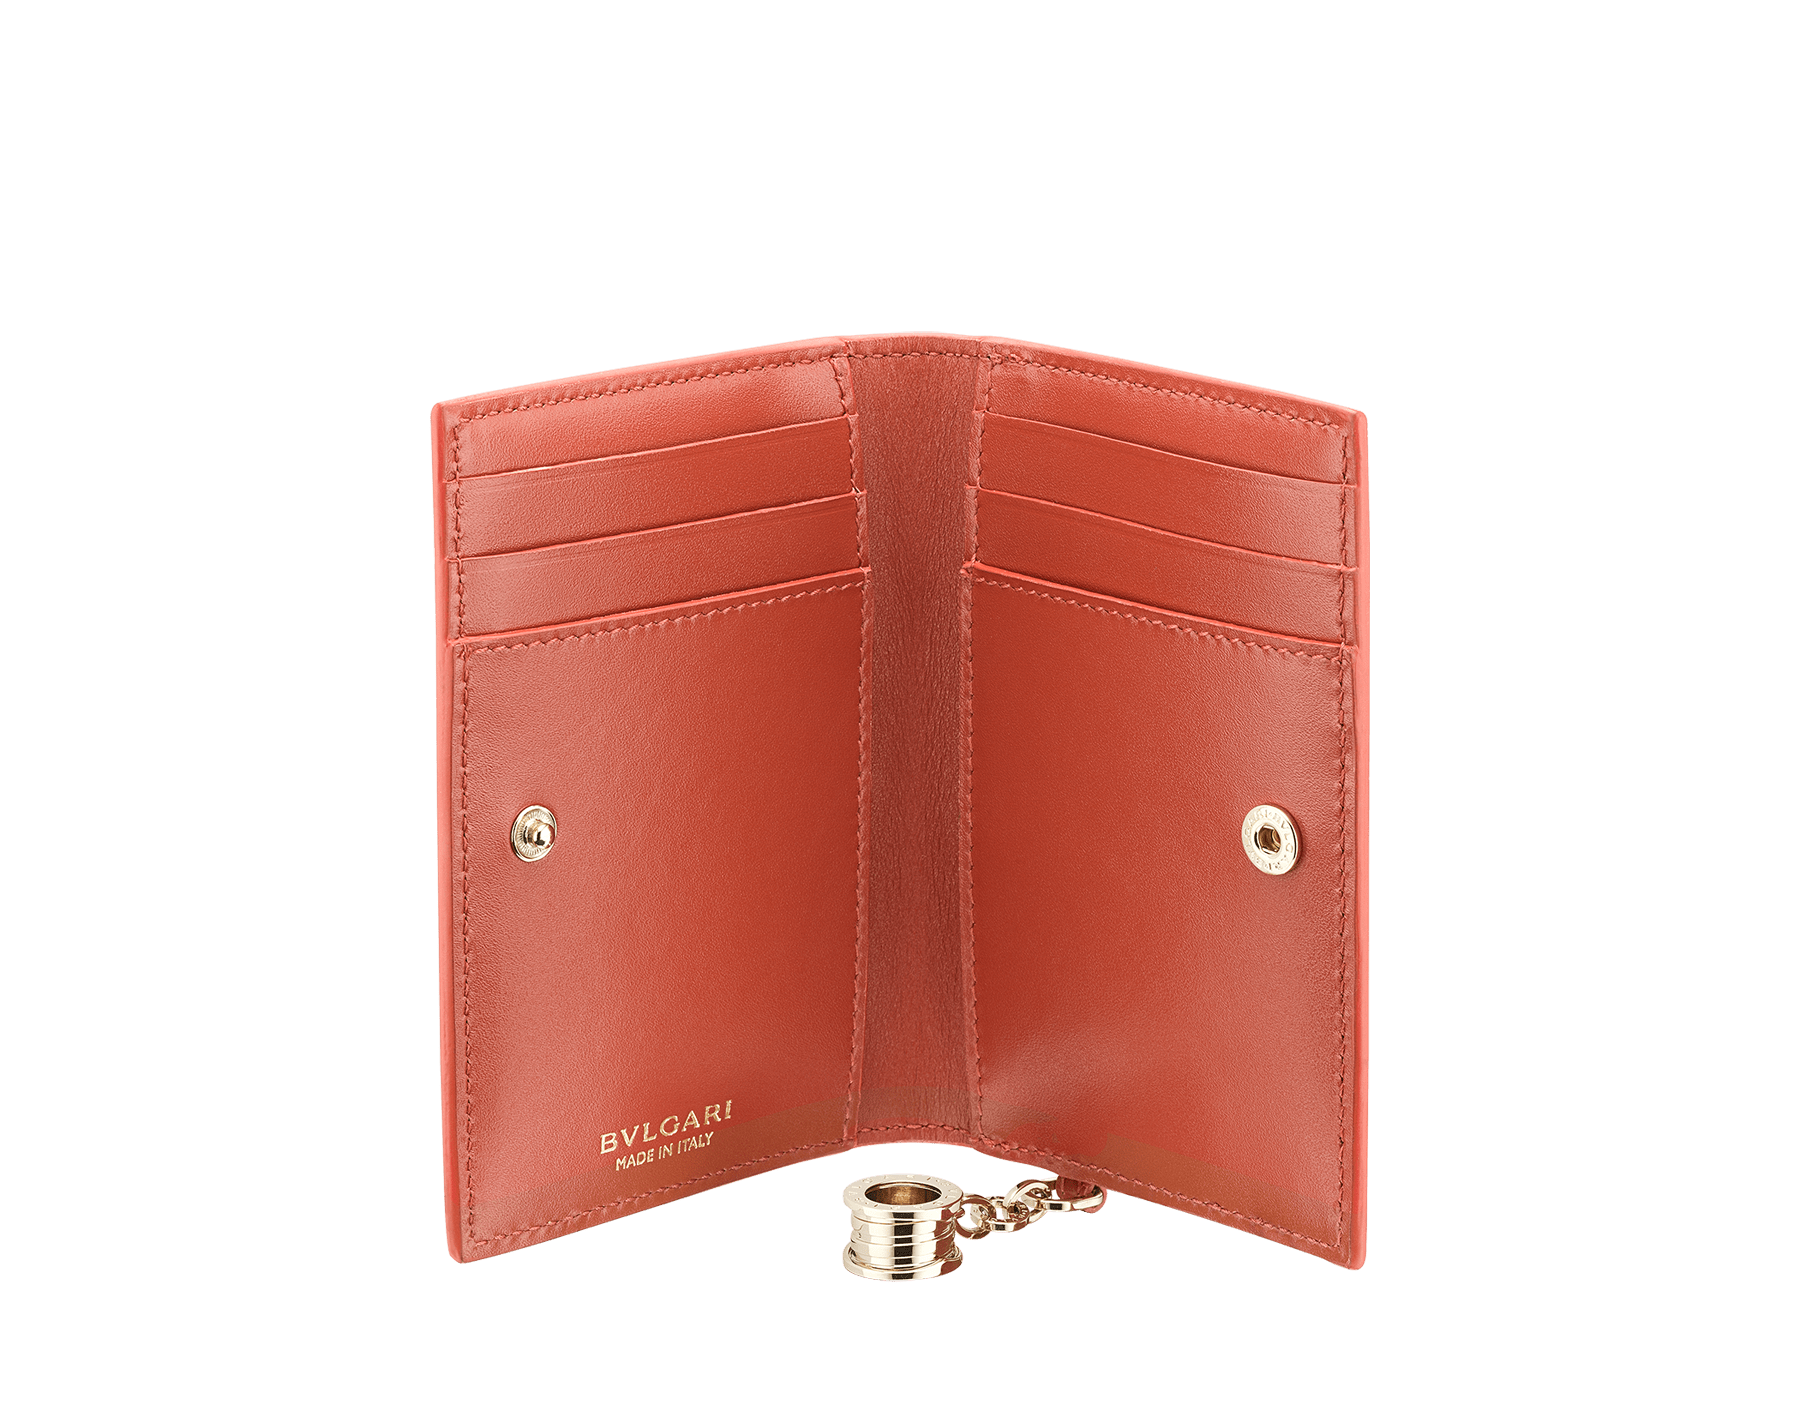 B.zero1 folded credit card holder in rosa di francia and imperial topaz goatskin. Iconic B.zero1 charm in light gold plated brass. 289069 image 2